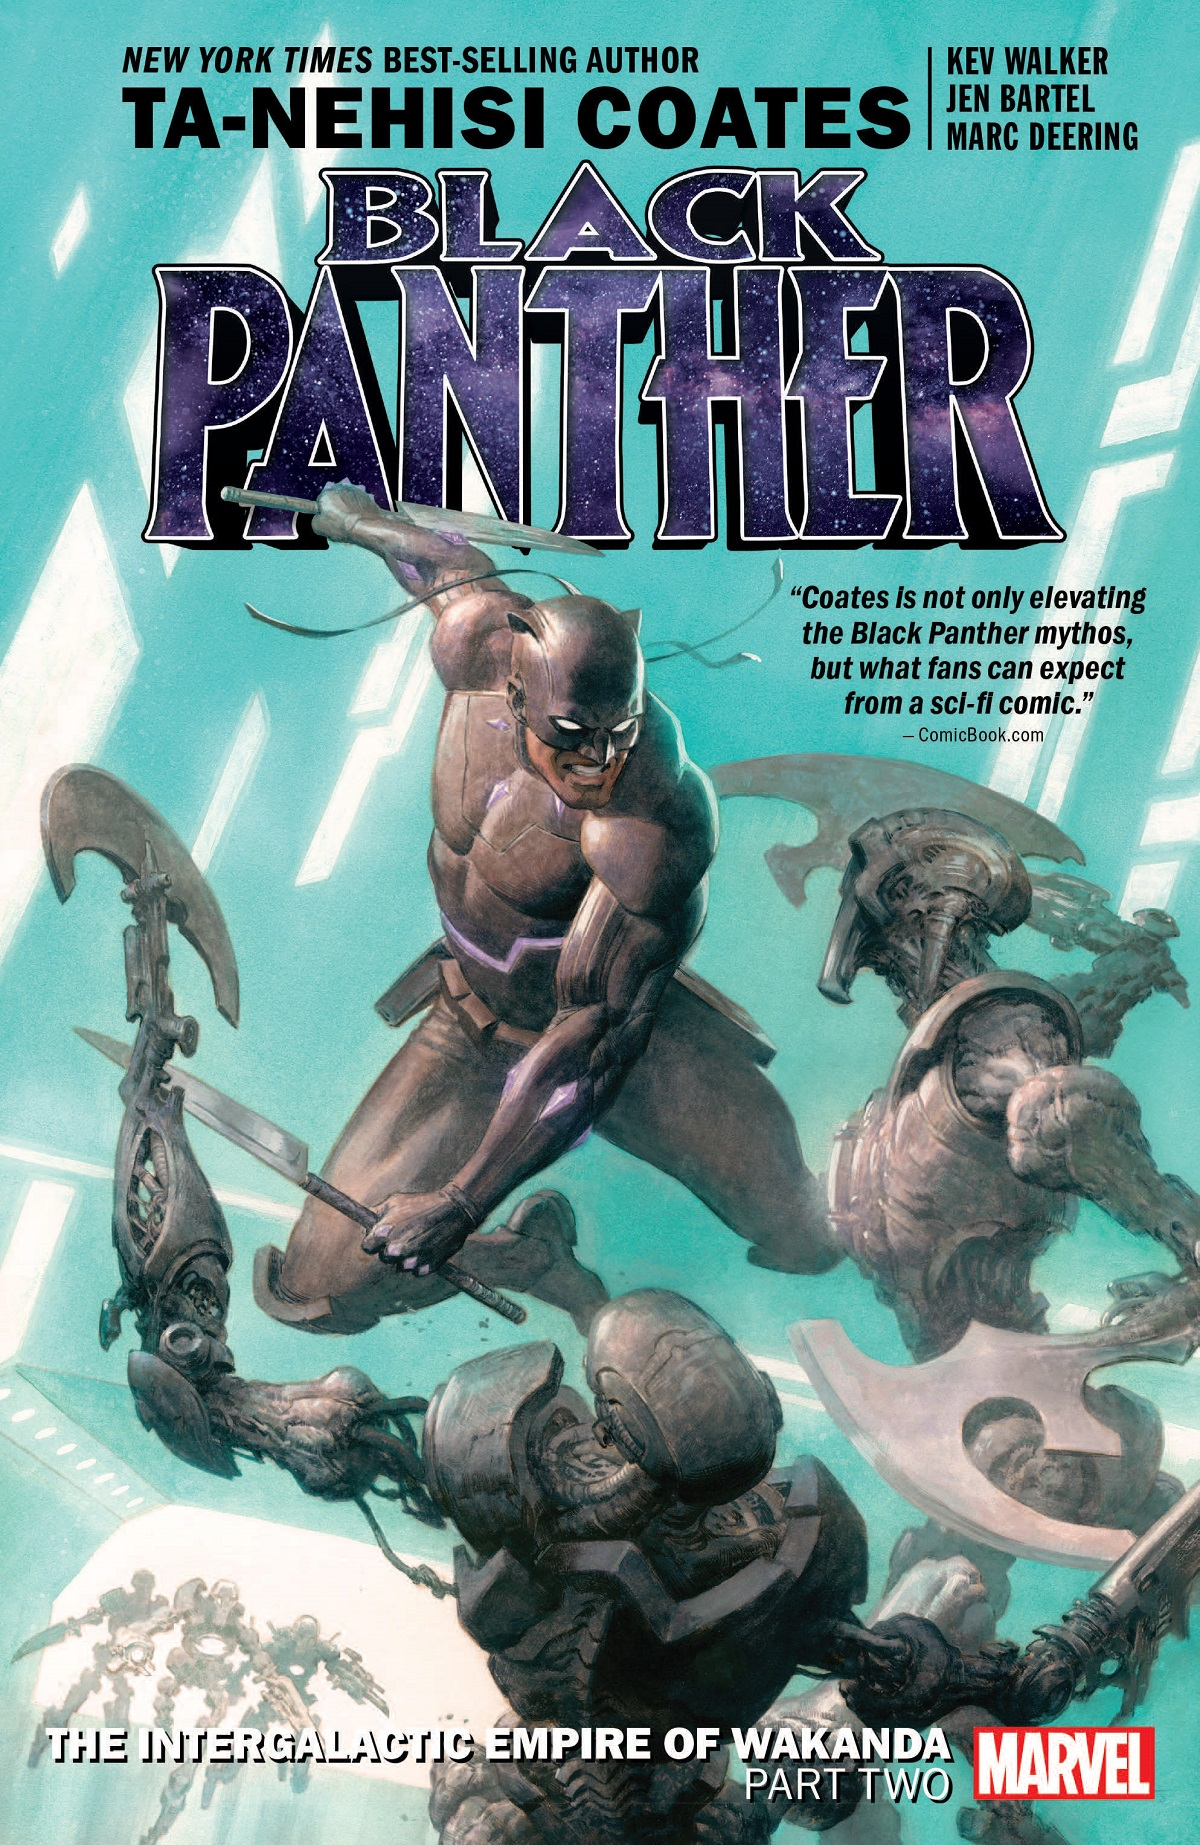 Black Panther Book 7: The Intergalactic Empire Of Wakanda Part Two (Trade Paperback)